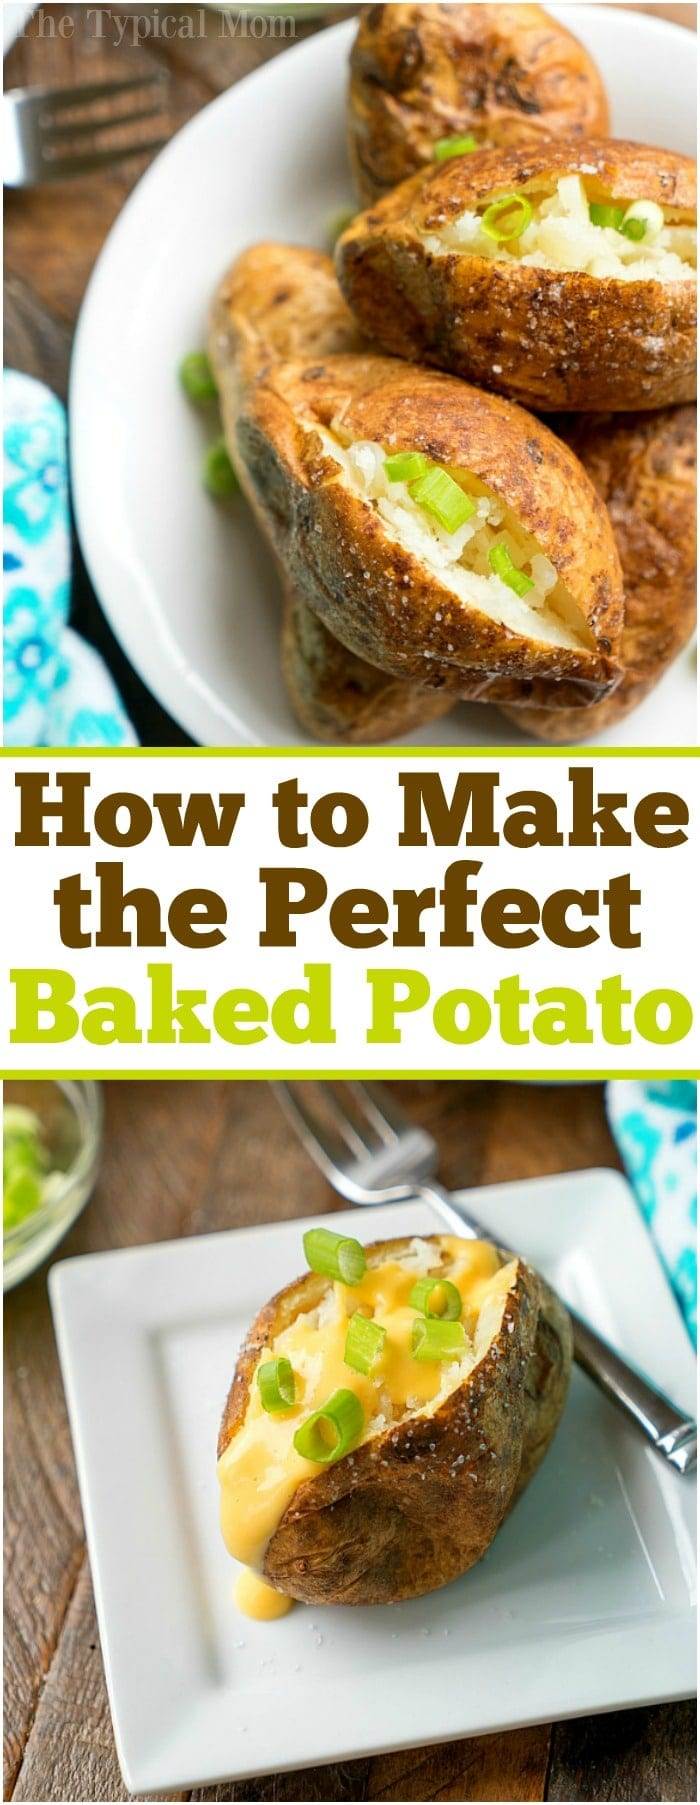 This is the best way to make baked potatoes so they're tender and fluffy on the inside with crispy flavorful potato skins! Used as a side dish or dinner stuffed with chili or cheese they're delicious and cheap to make. If you're looking for an easy baked potato recipe I've got it here. #bakedpotatoes #howtomake #perfect #potatoes #baked #sidedish #healthy #easy